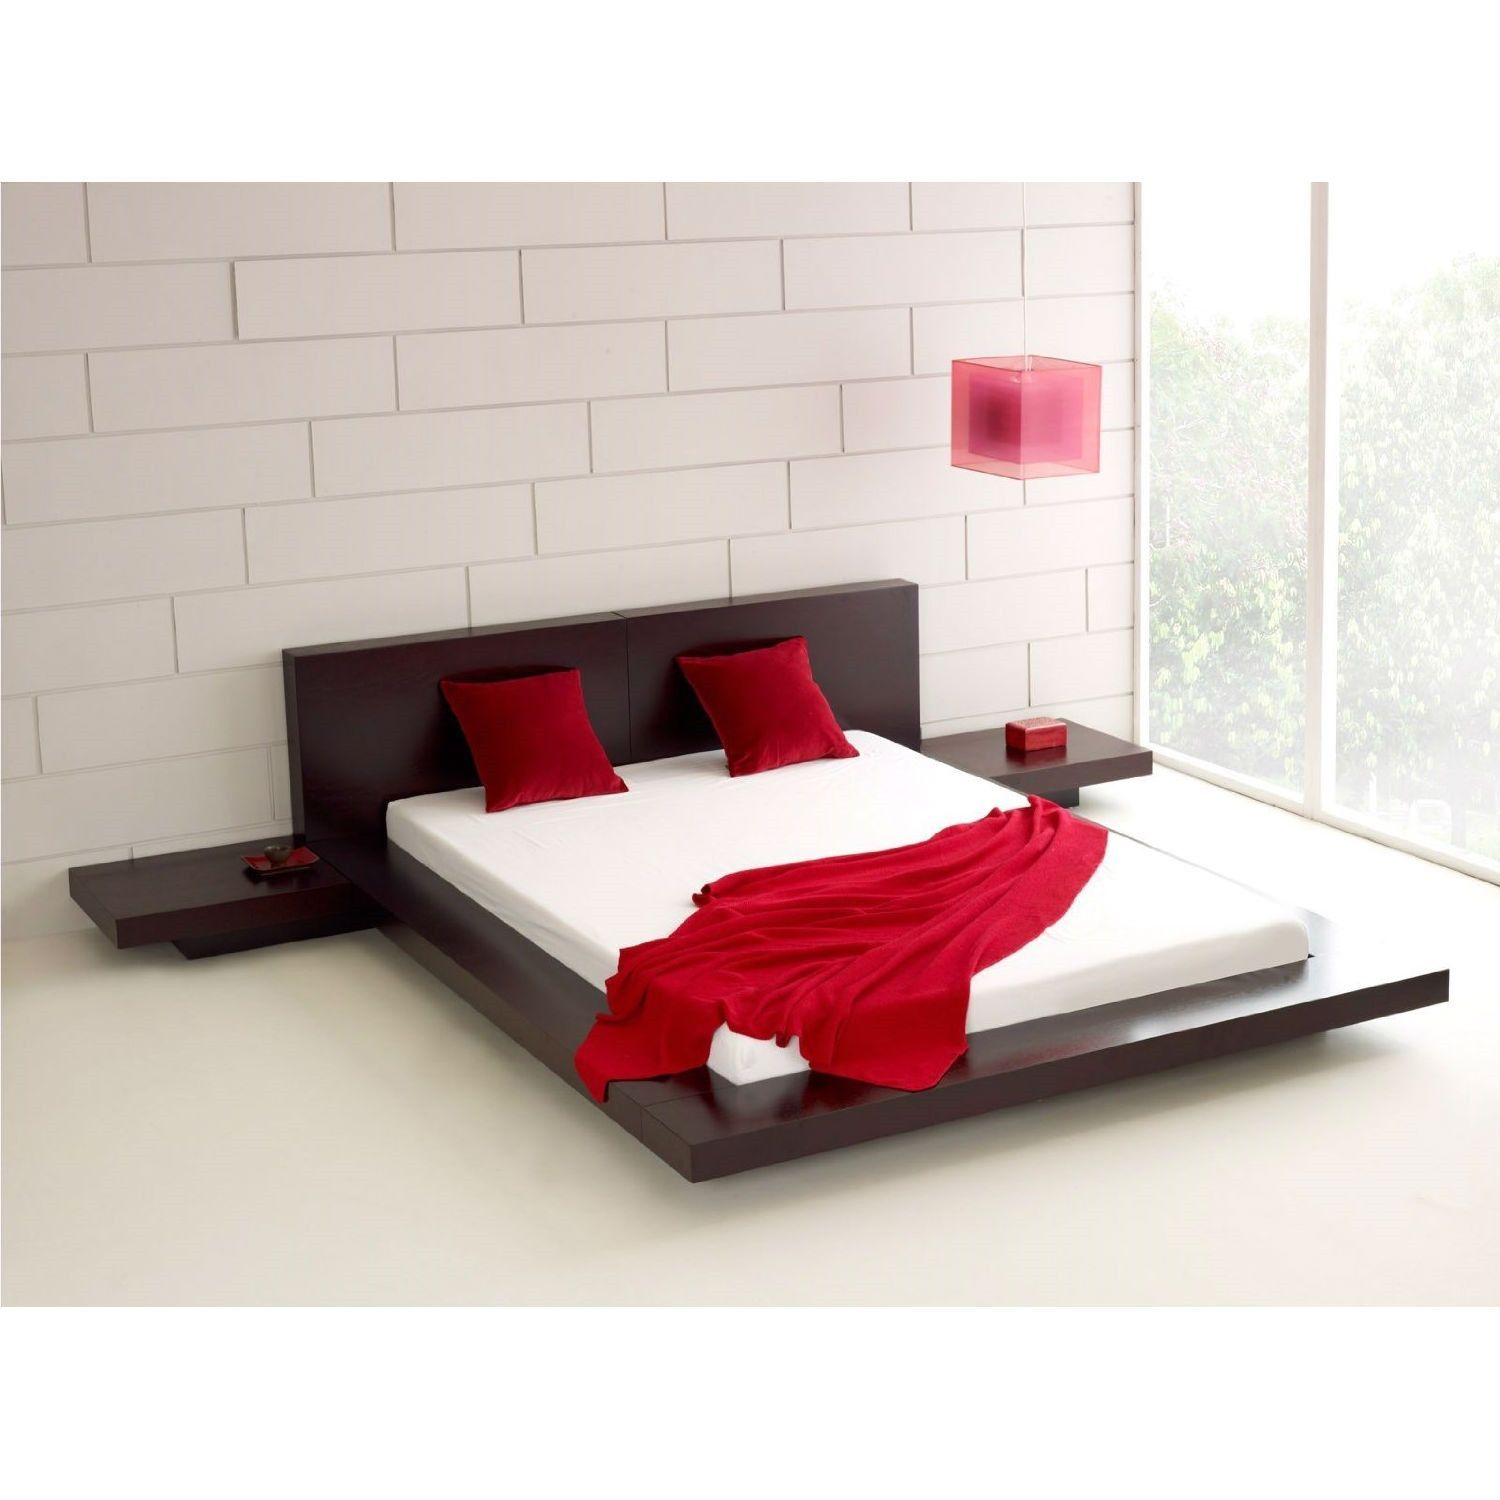 Queen Modern Platform Bed w/ Headboard and 2 Nightstands in Espresso ...